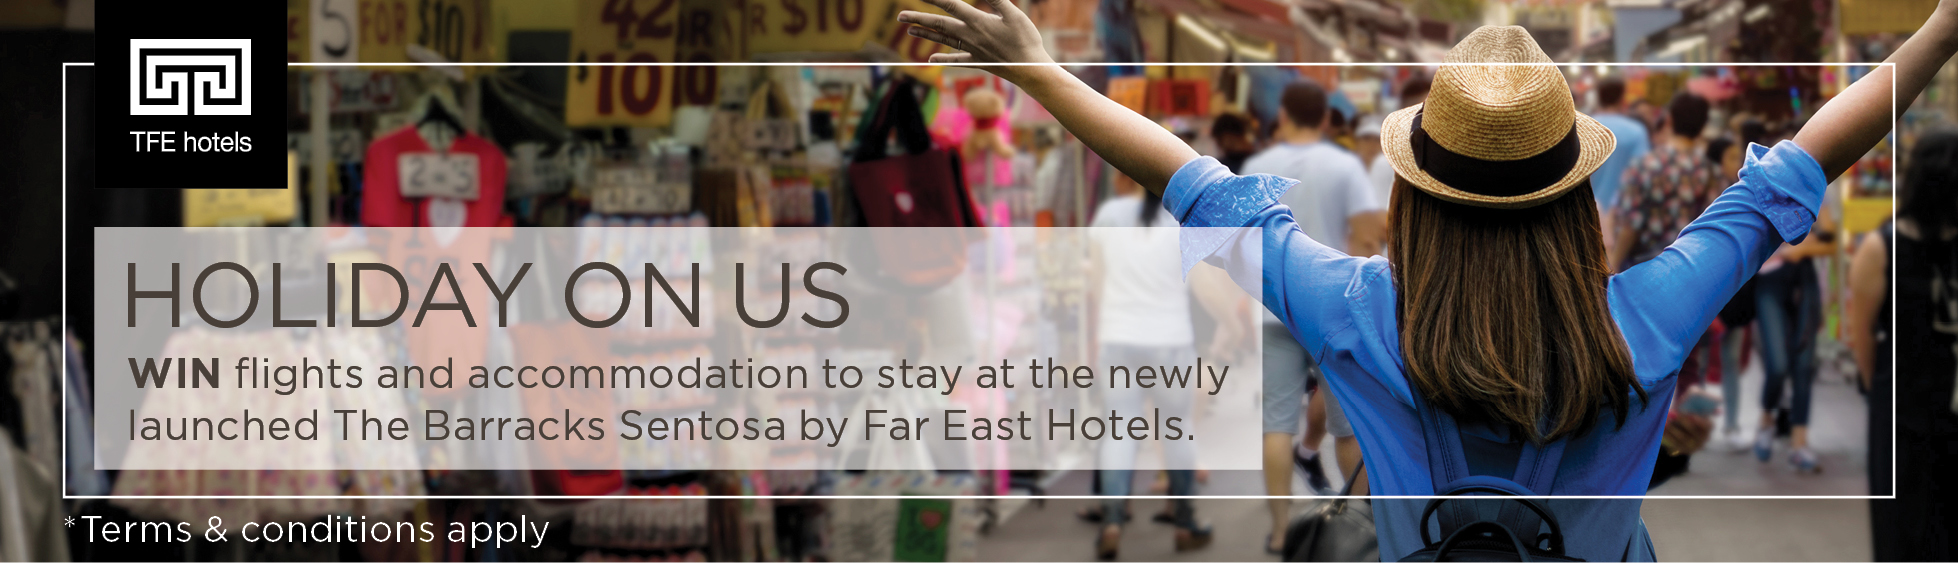 tfe Hotels holiday on us